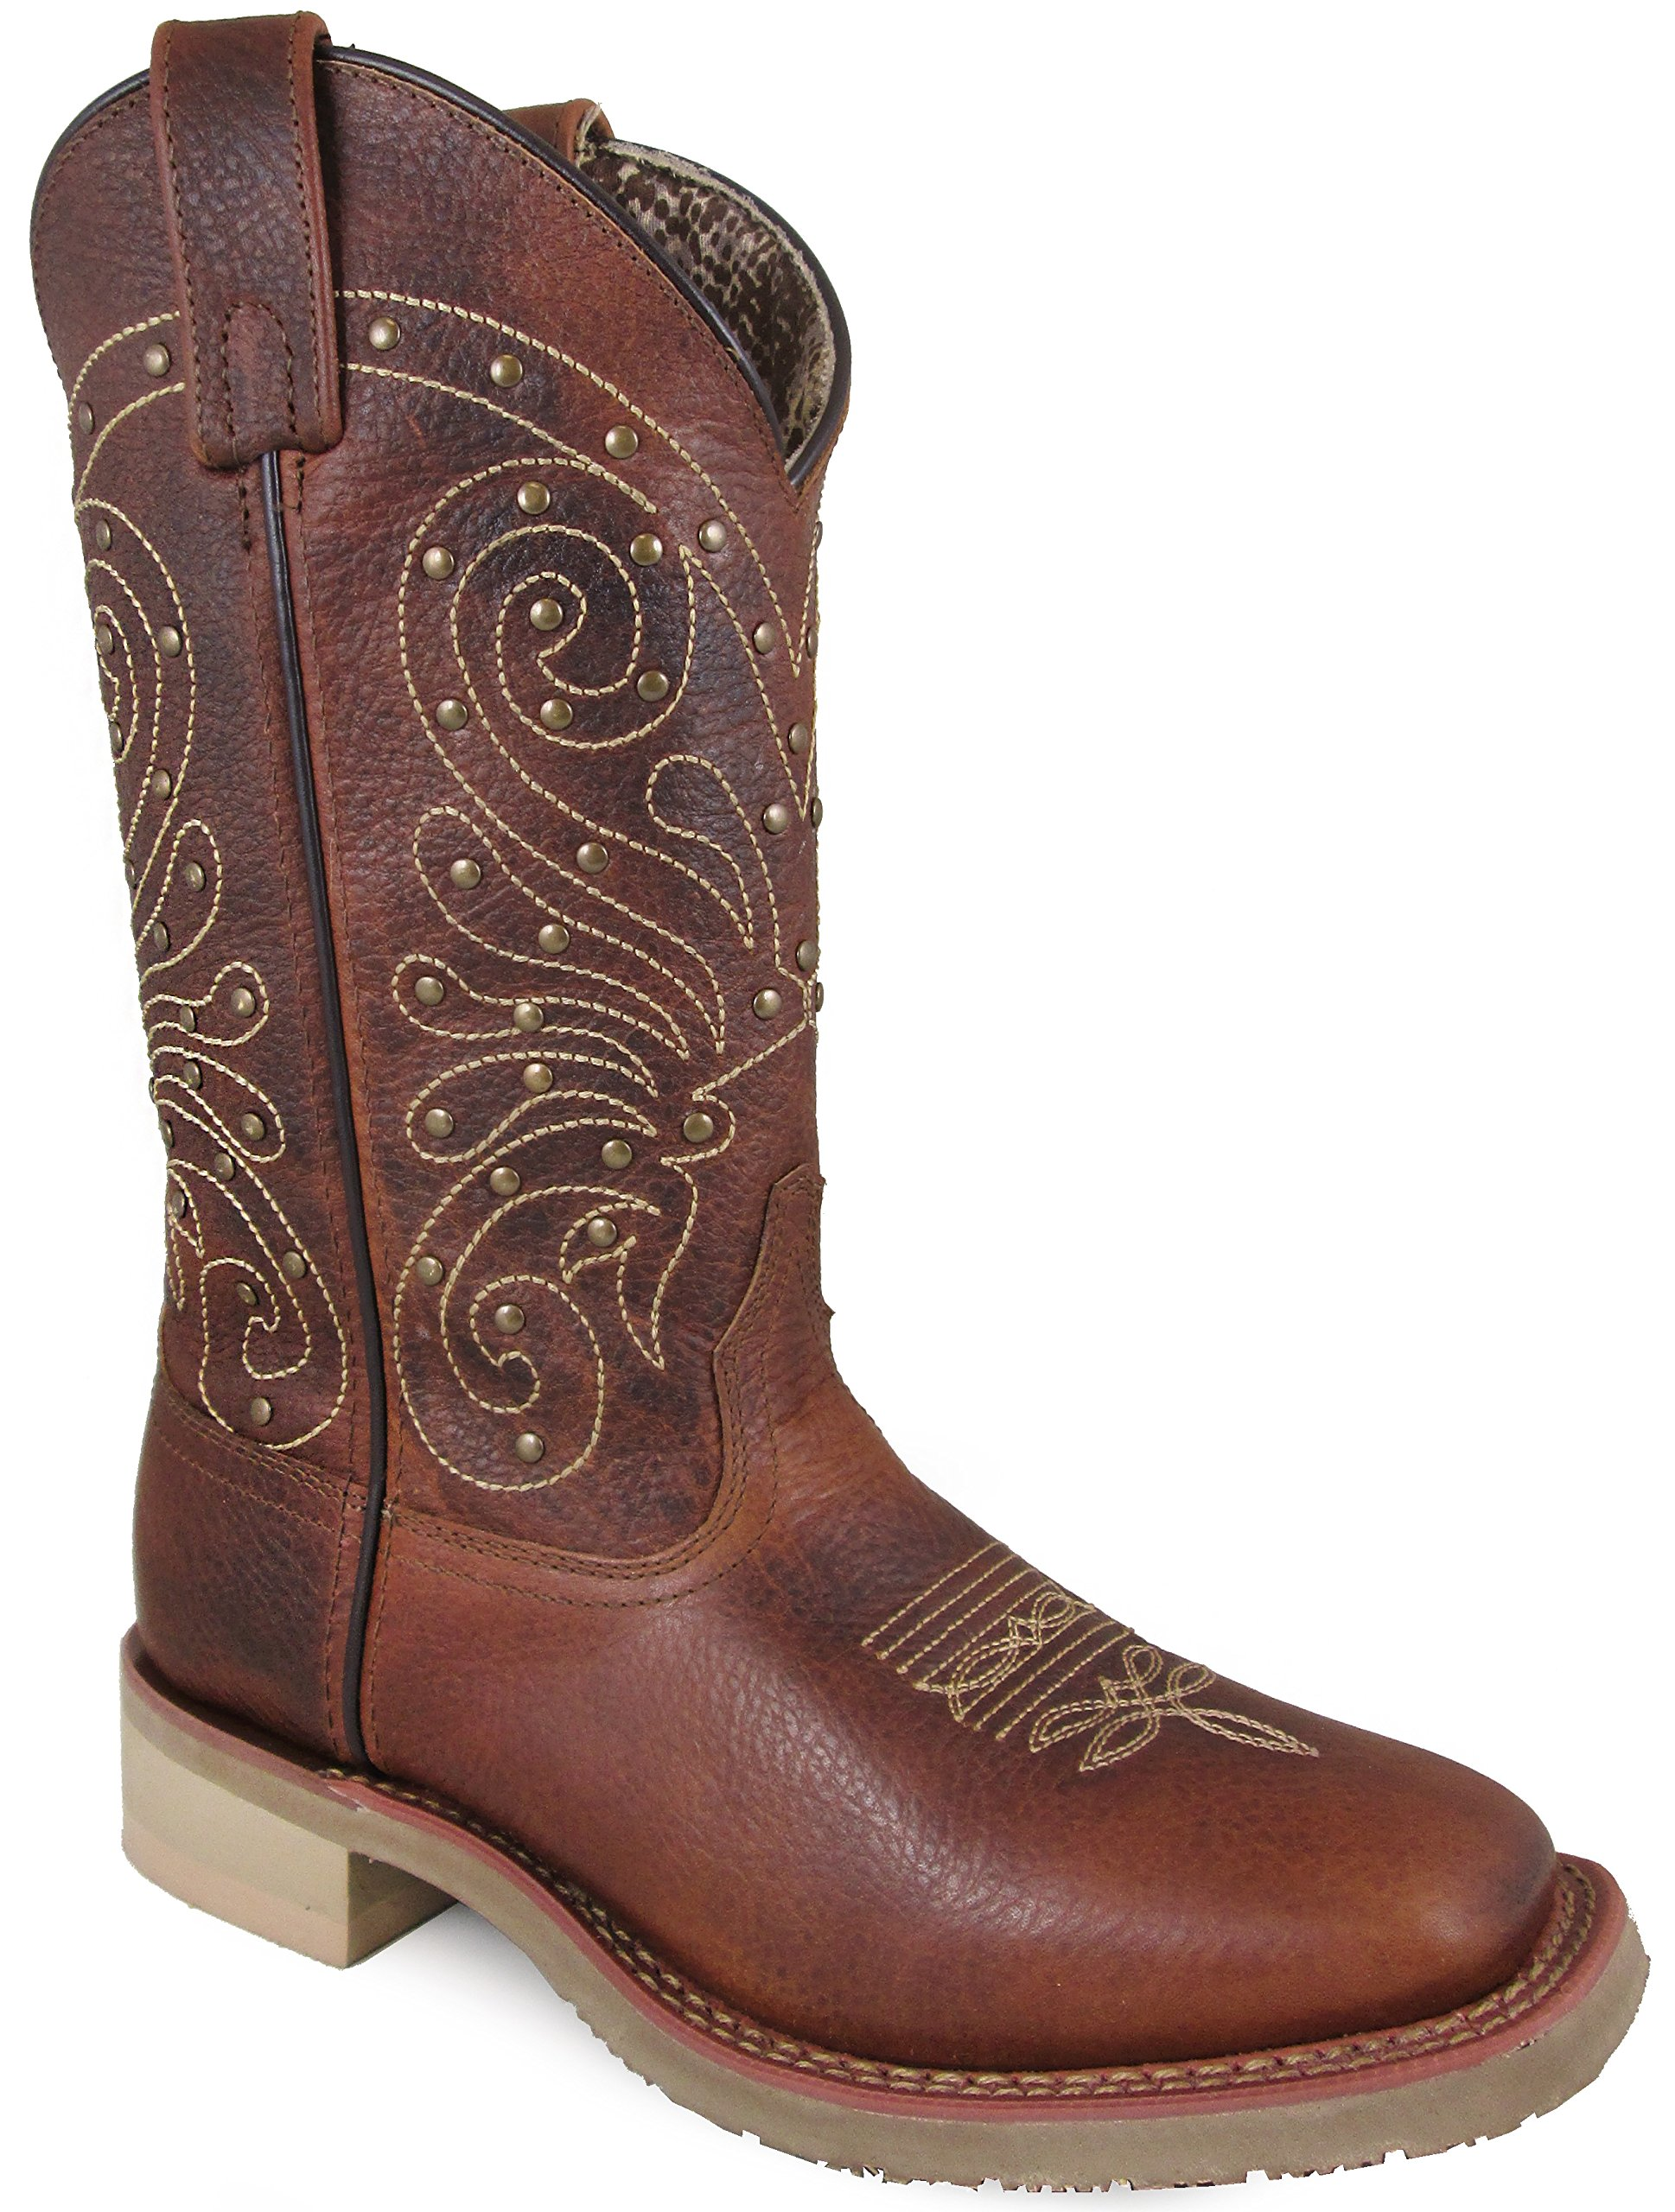 Smoky Mountain Women's Summer Pull On Closure Stitched Studded Design Square Toe Brown Boots 11M